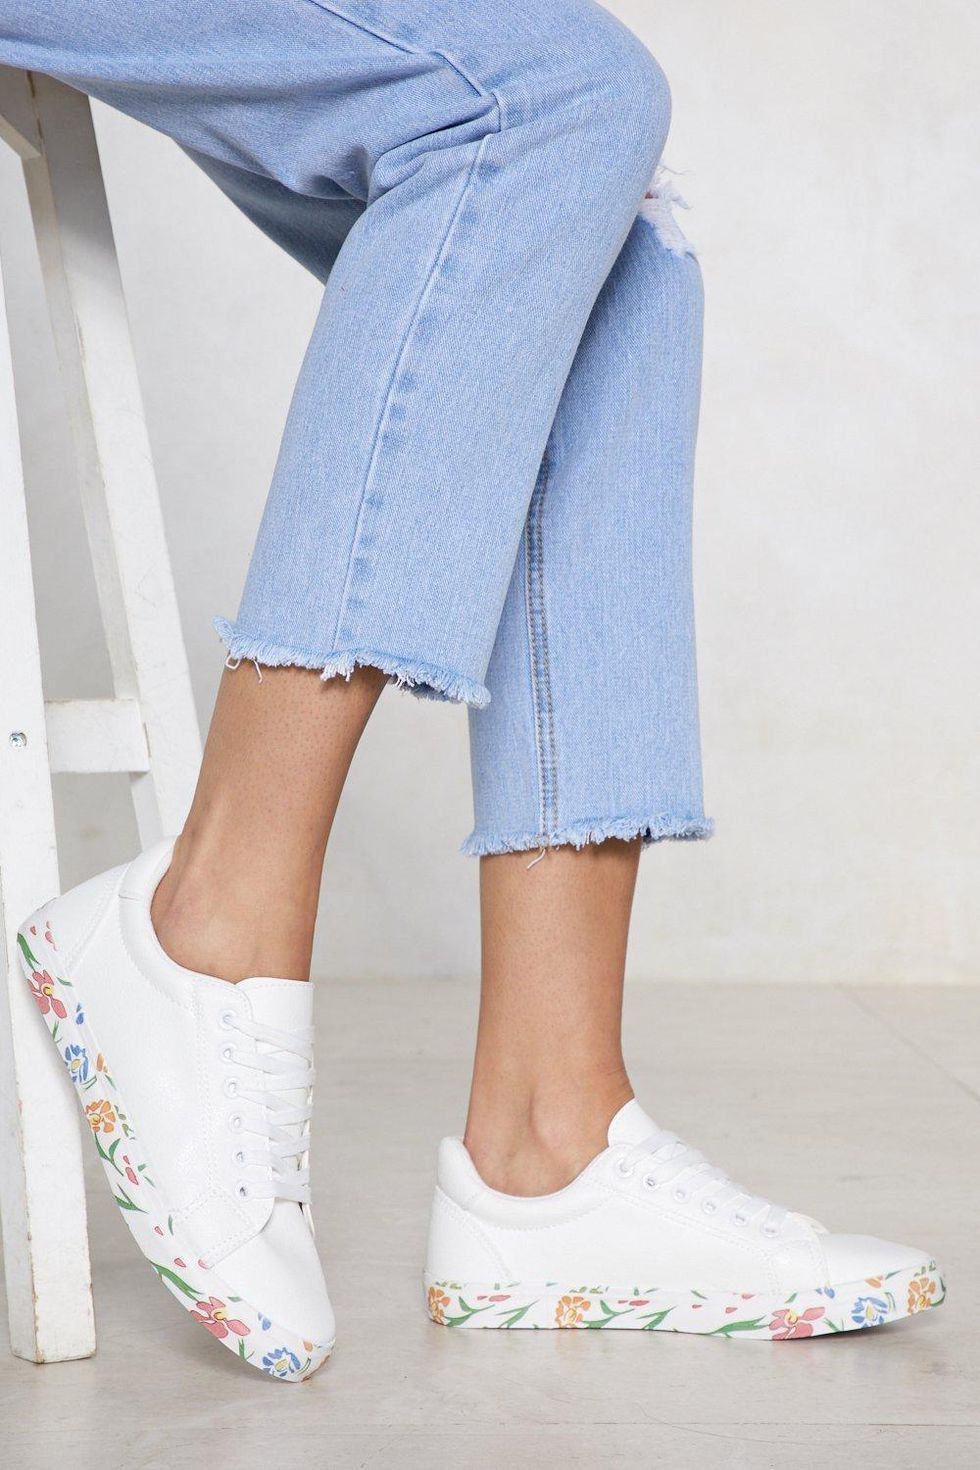 25 Sneakers That Will Make Your T Shirt And Jeans Look So Much